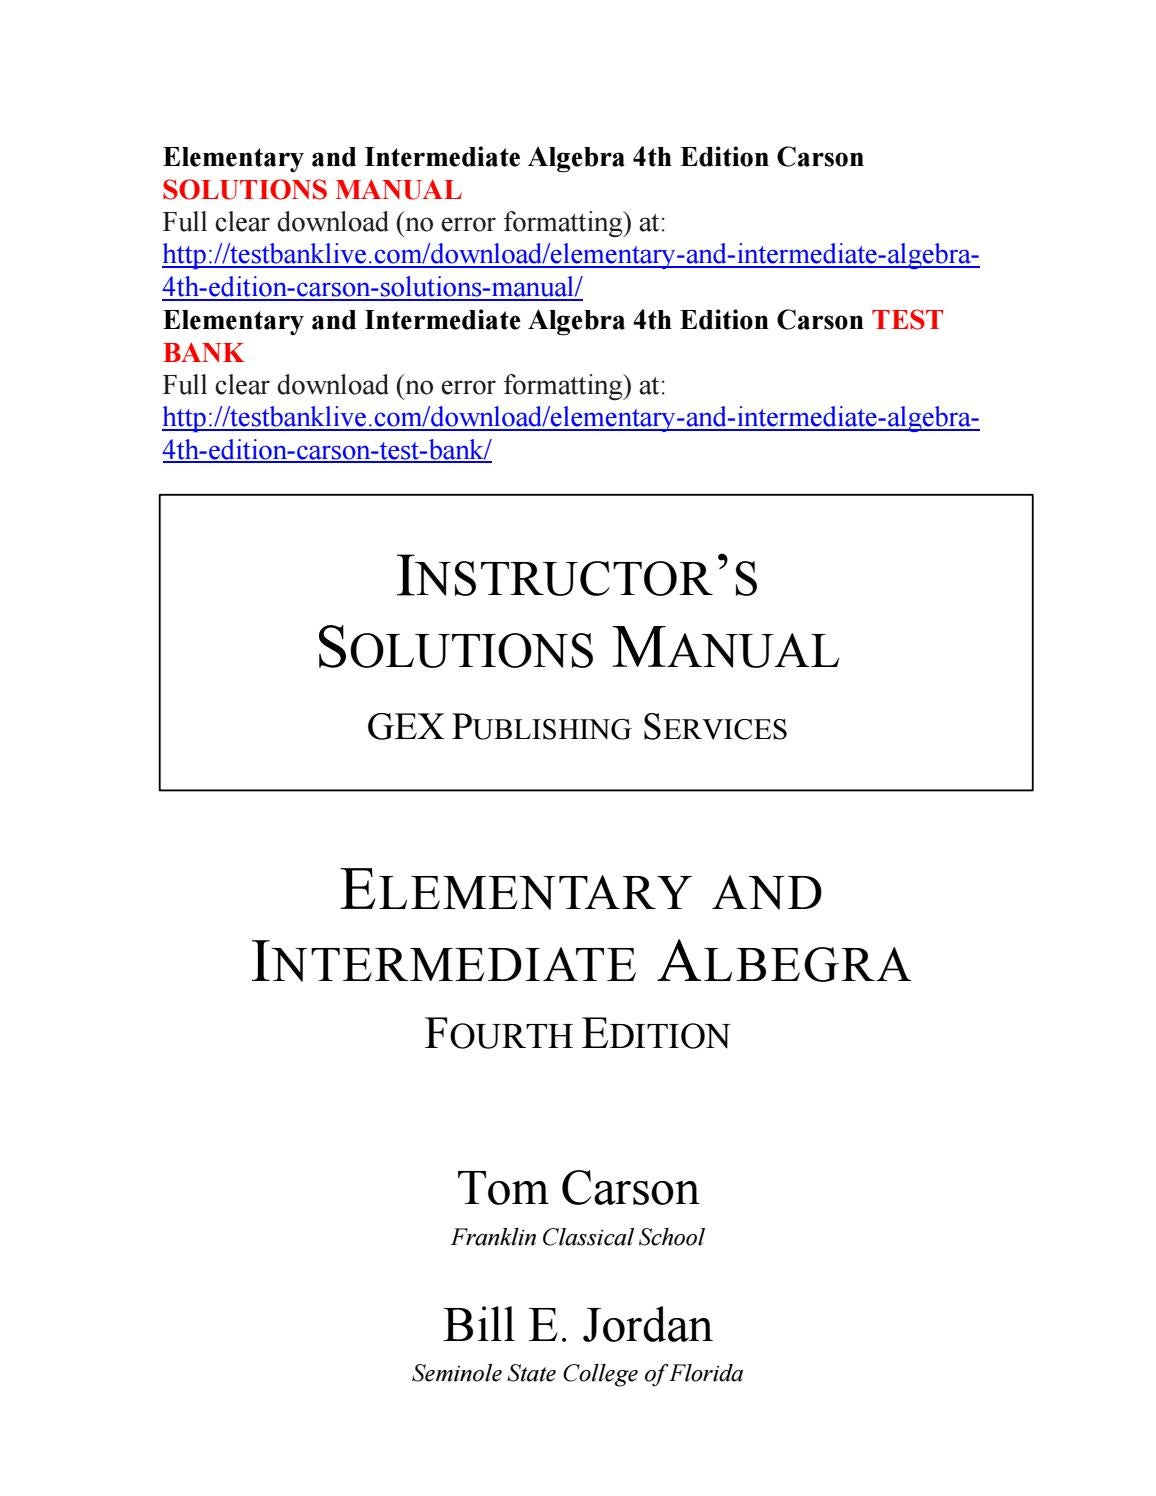 Elementary and intermediate algebra 4th edition carson solutions manual by  qwerty1120 - issuu